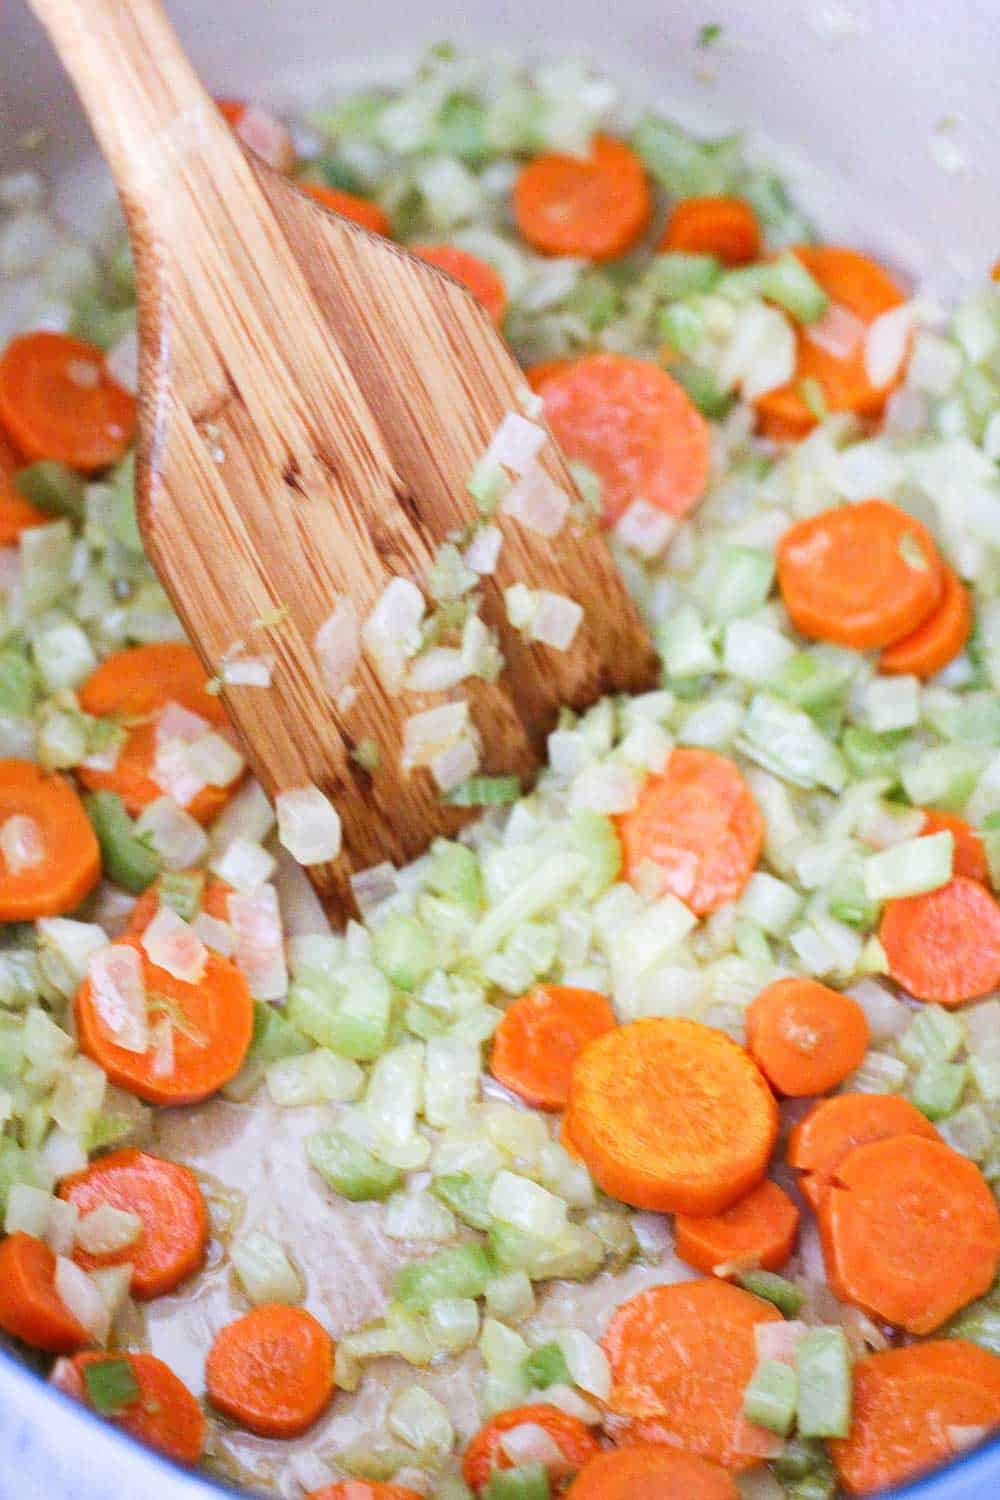 Sliced carrots, celery and onion sautéing in a large pot with a wooden spoon.